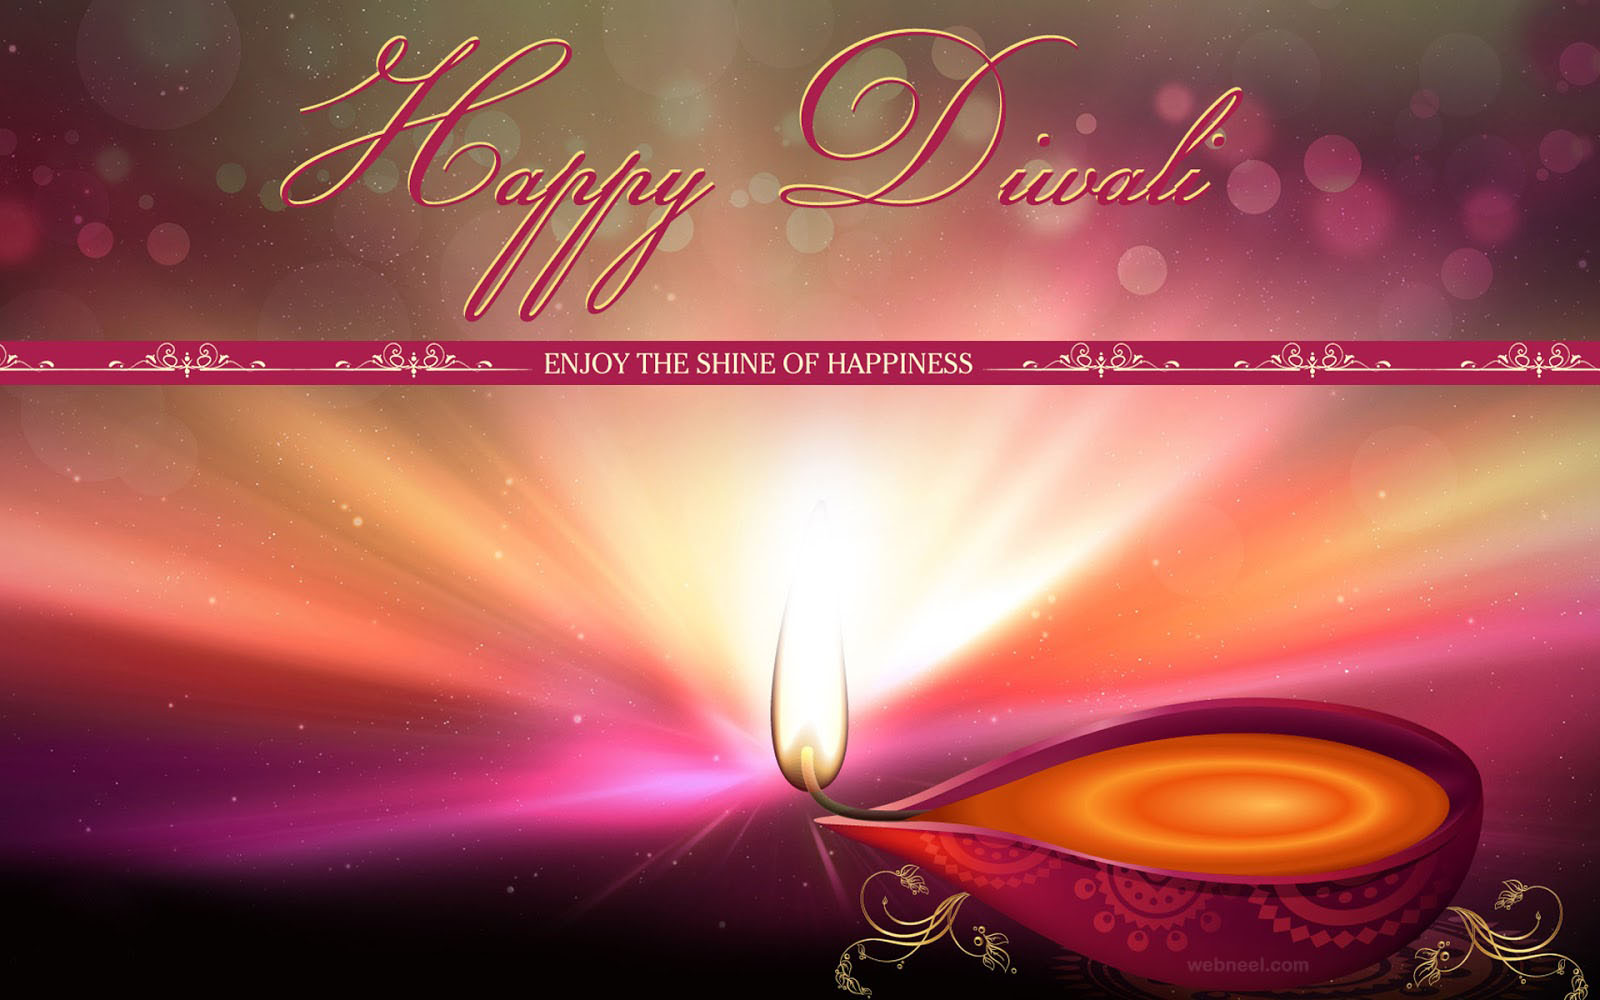 Diwali Wishes with Candles